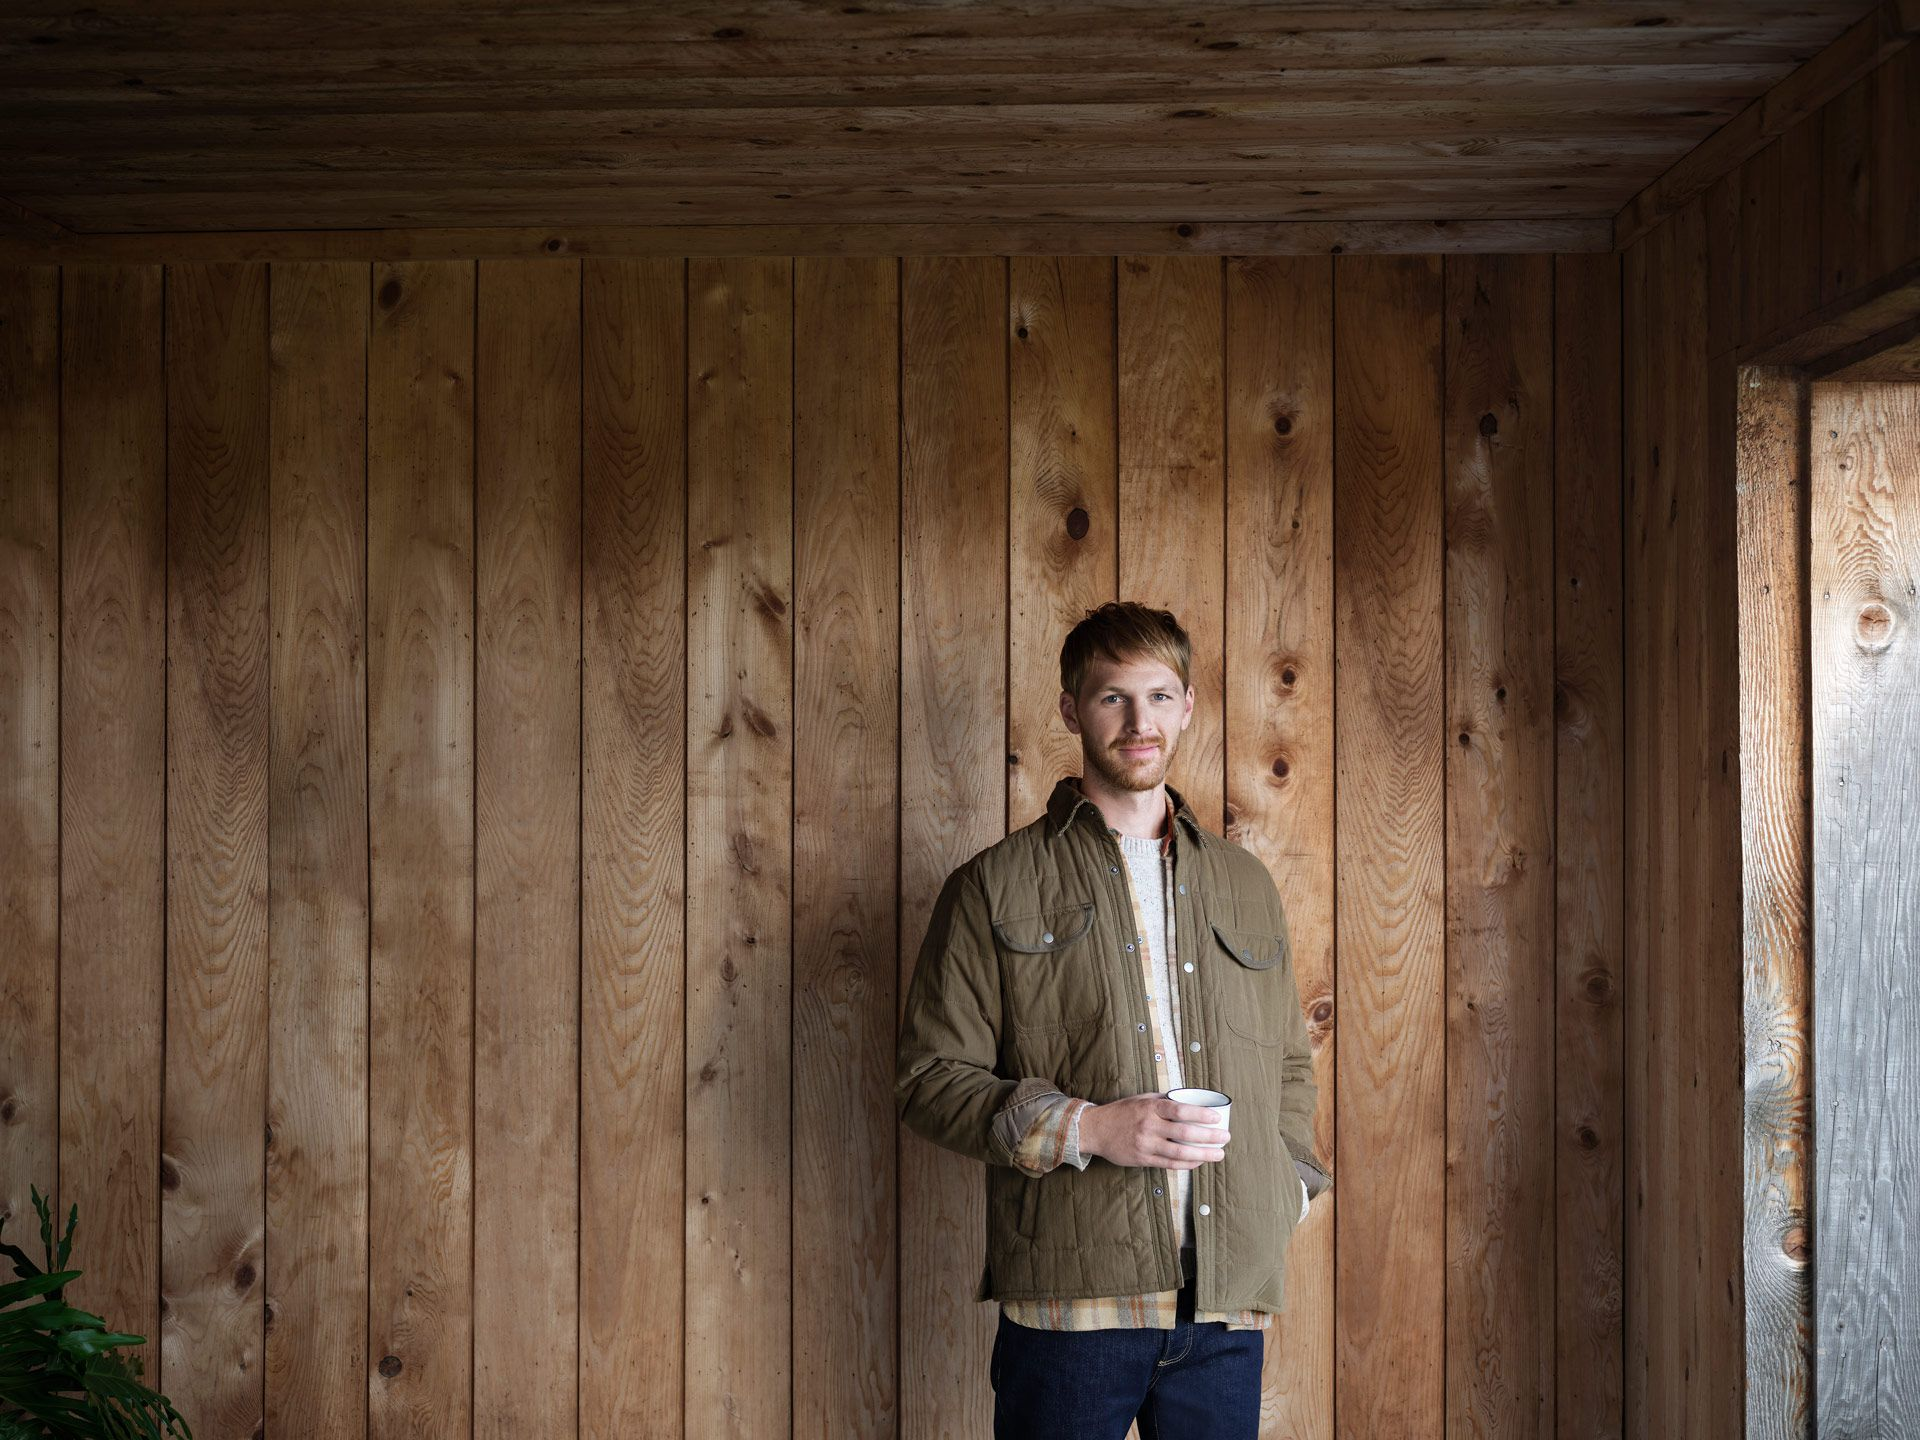 ginger haired man with beard wearing khaki jacket holding white cup in front of wood wall looking at camera photographed by Maxyme G Delisle for Desjardins campaign with Bleu Blanc Rouge